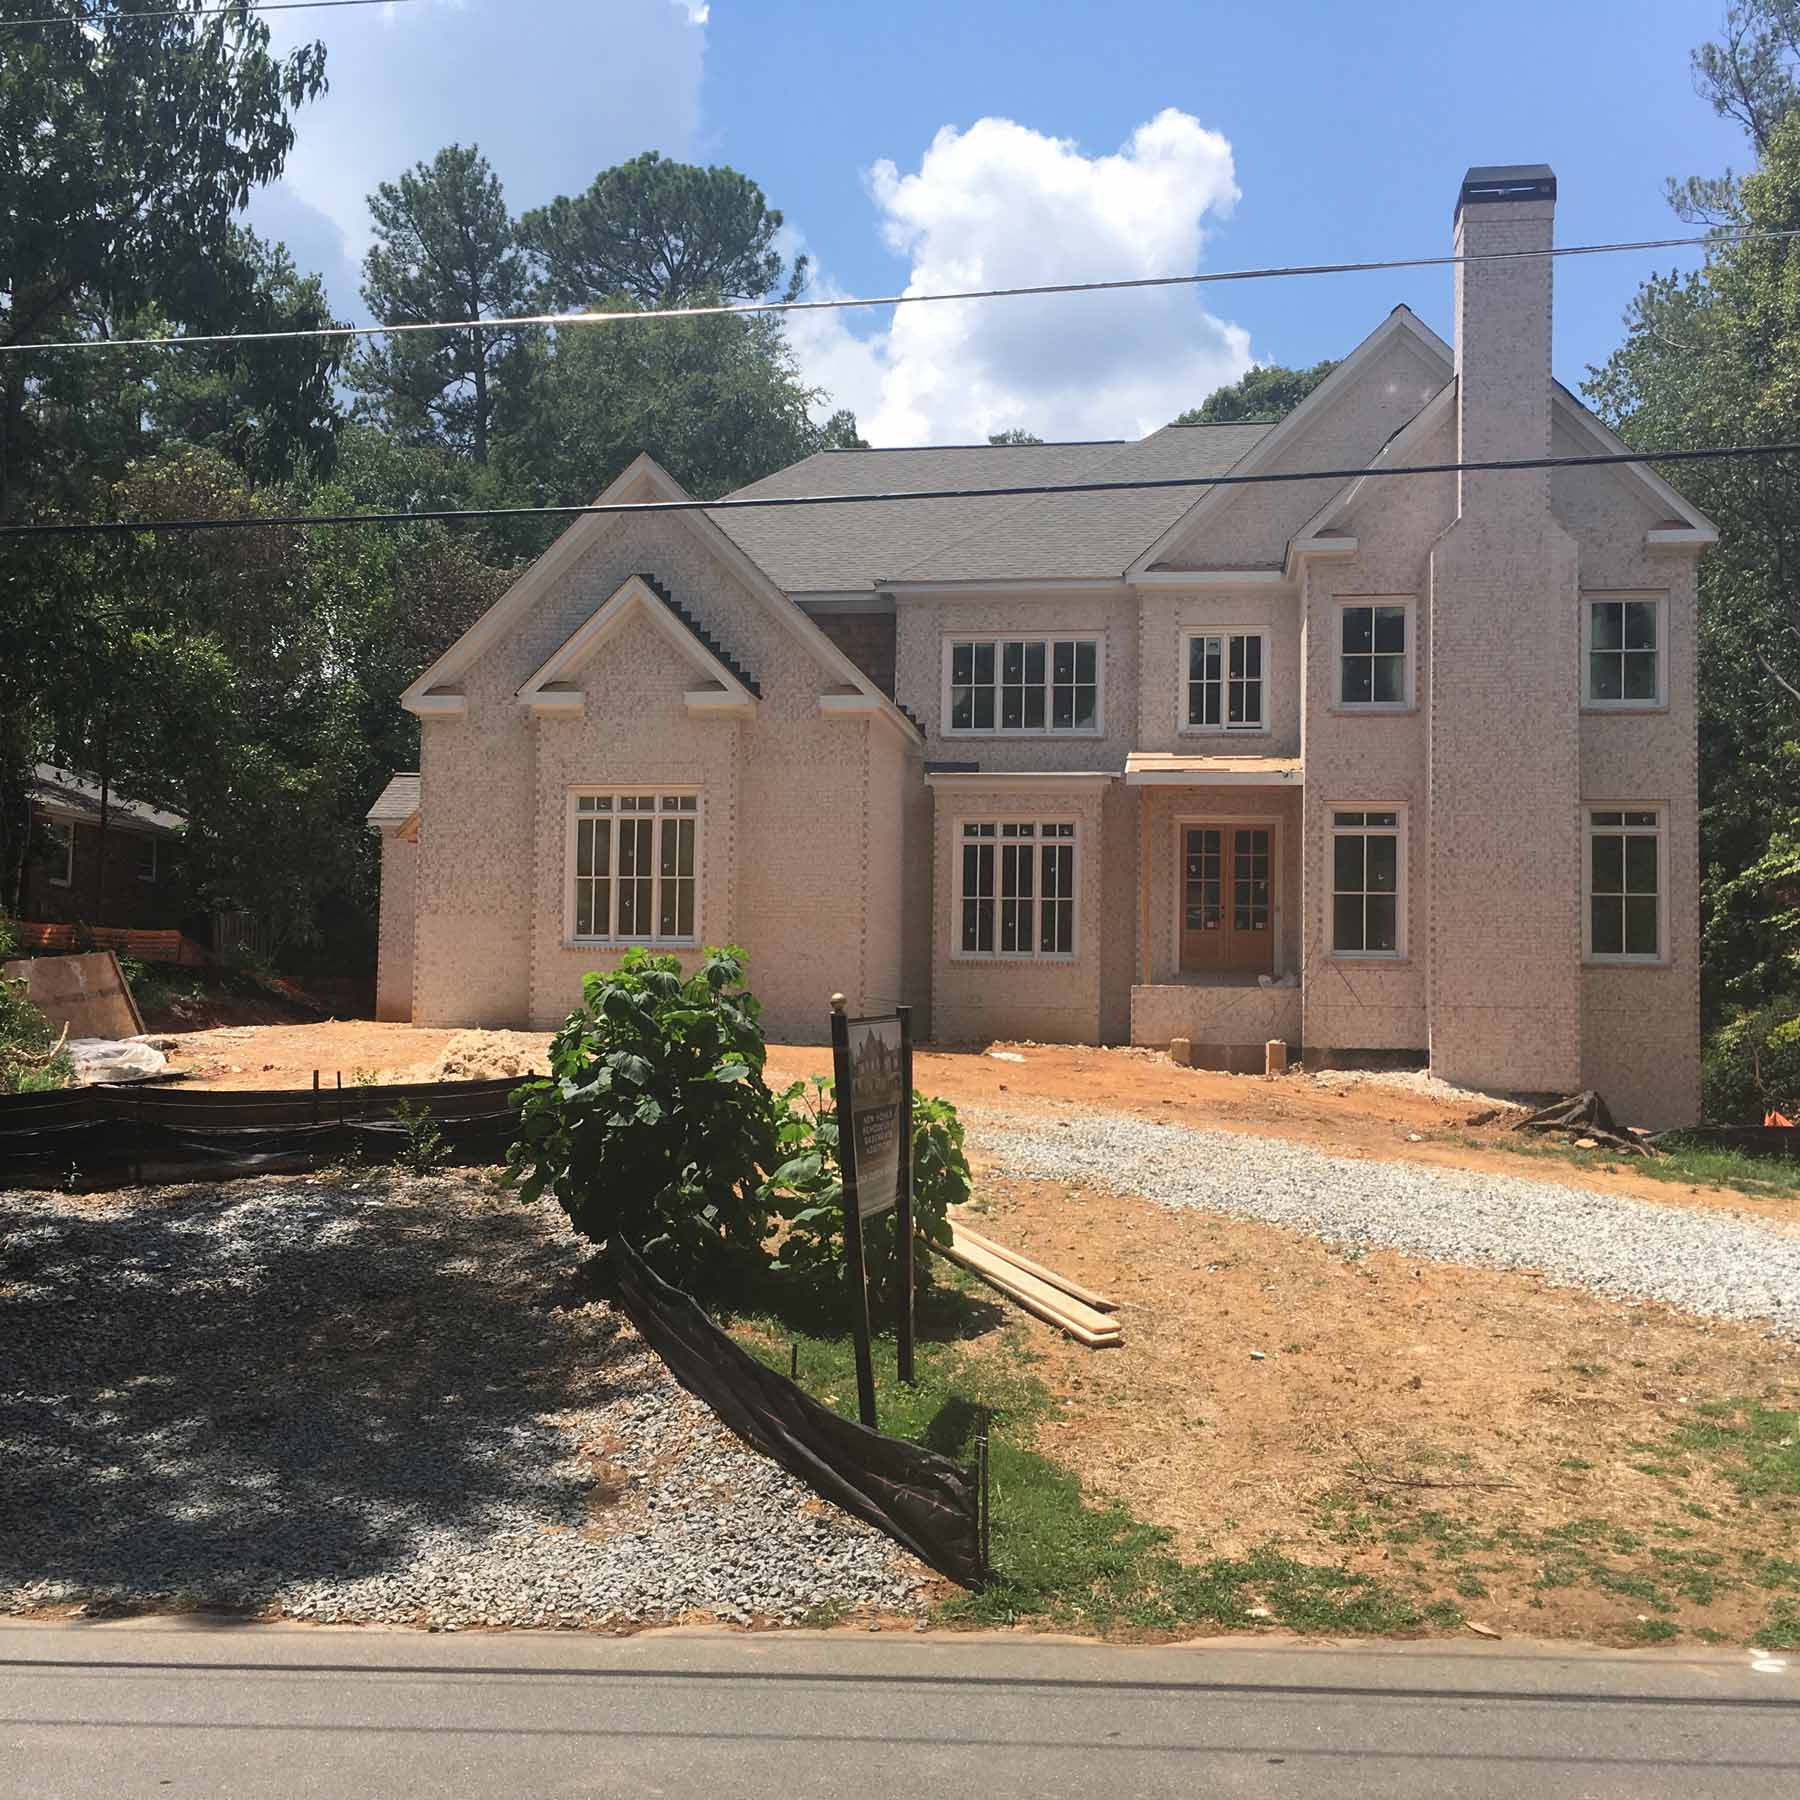 Casa Unifamiliar por un Venta en Upcoming Custom Build in Chastain 4566 Dudley Lane Sandy Springs, Georgia, 30327 Estados Unidos